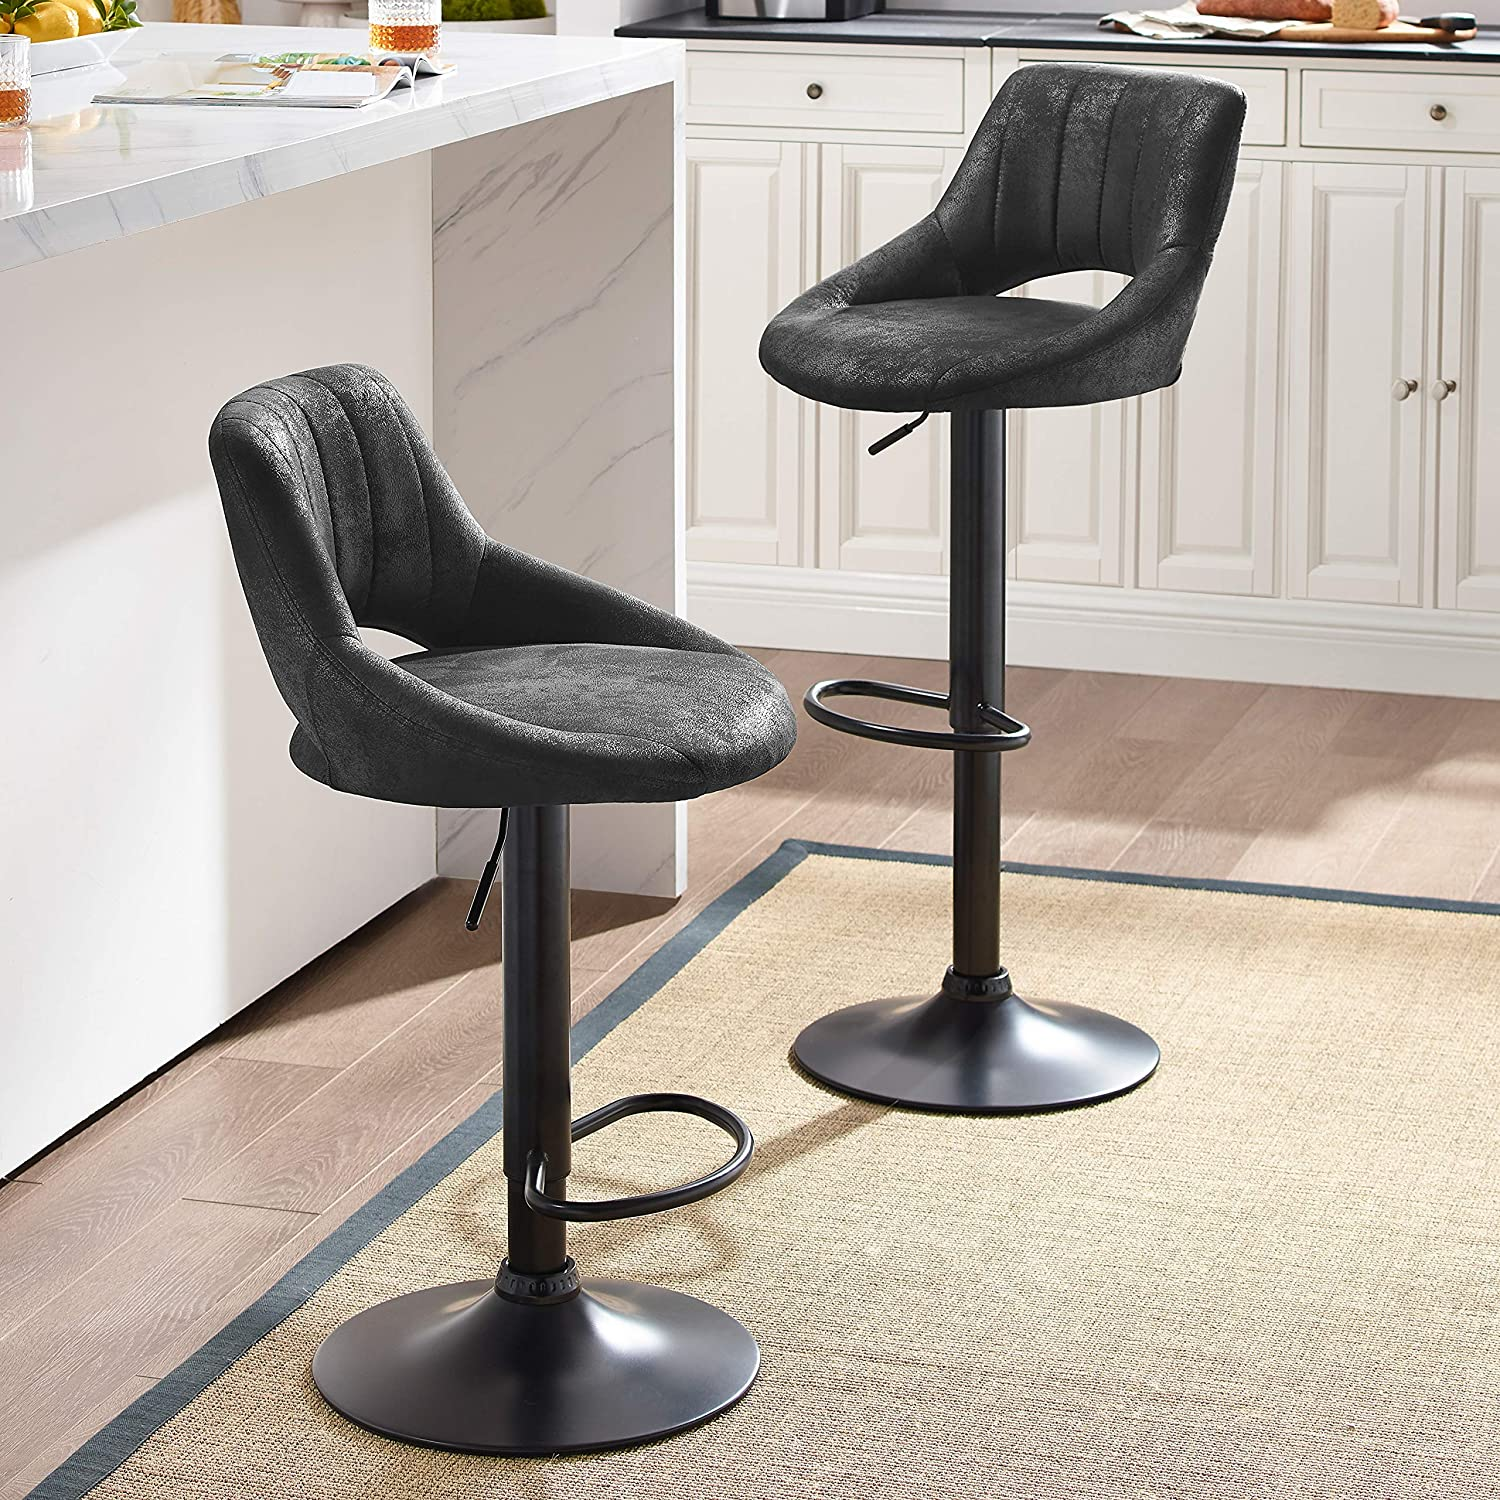 Art Leon Modern Retro PU Leather Adjustable 360 Swivel BarStools Chair Set of 2 with Open Backrest Black Powder Coated Gas Lift and Footrest Black